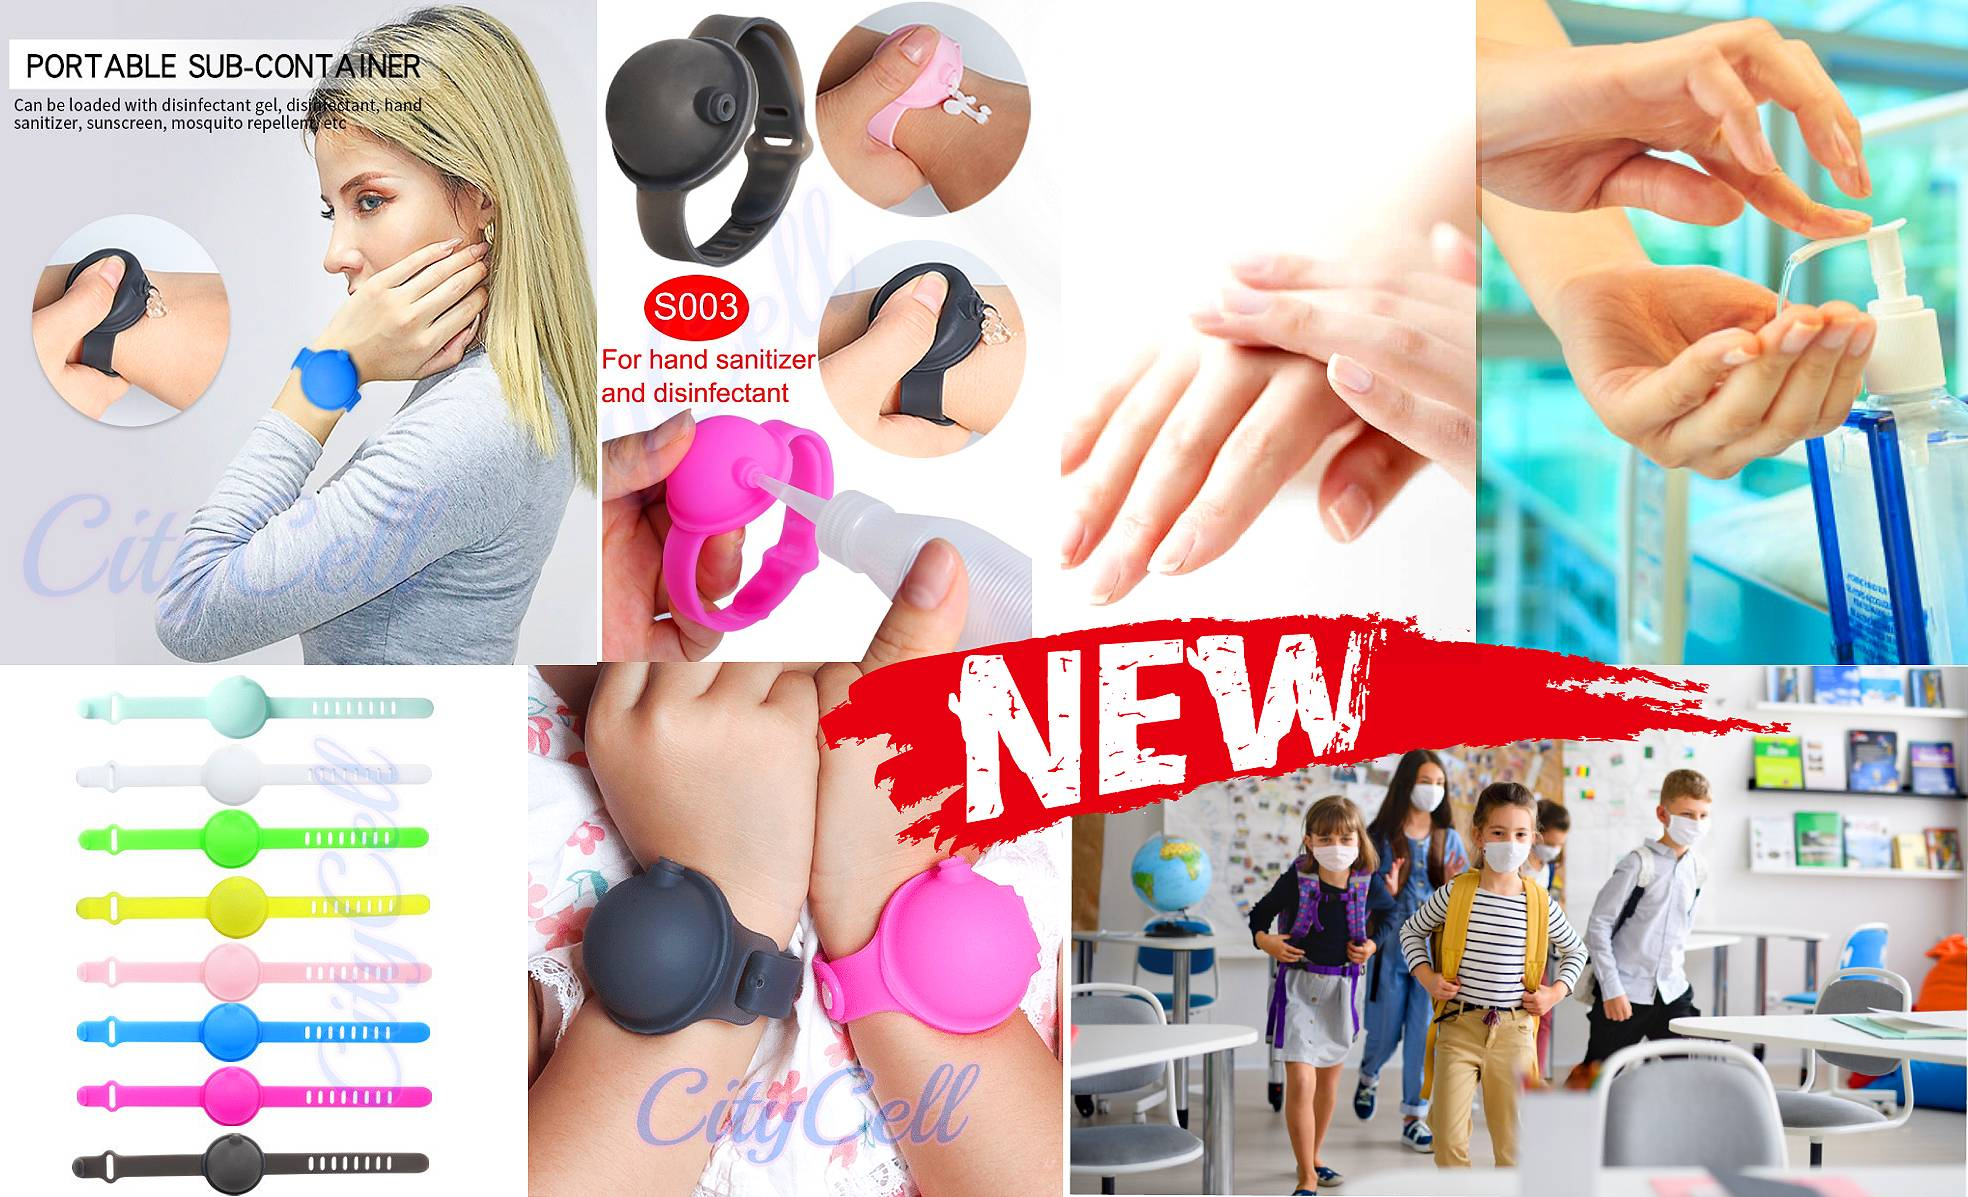 PORTABLE SUB-CONTAINER Antiseptic recipe portable bracelets CityCell+ Cildrens Kids speacial for scool Best Price Limassol Cyprus Paphos Larnaka Nicosia